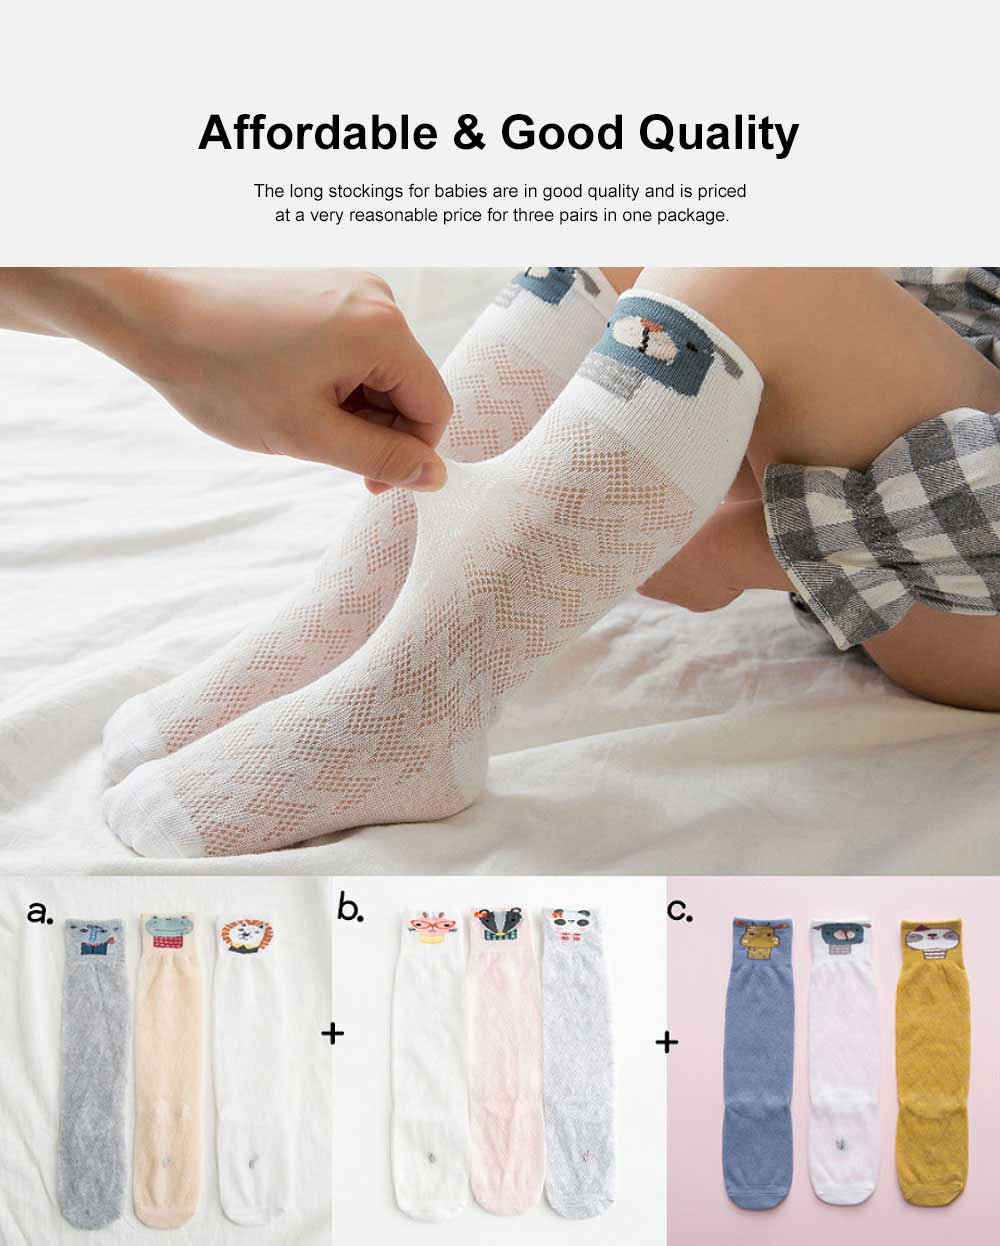 Pure Cotton Long Stockings for Babies Spring Summer, Thin Mesh Socks with Cartoon Pattern Design, Mid-calf Length Socks Baby Hosiery 2